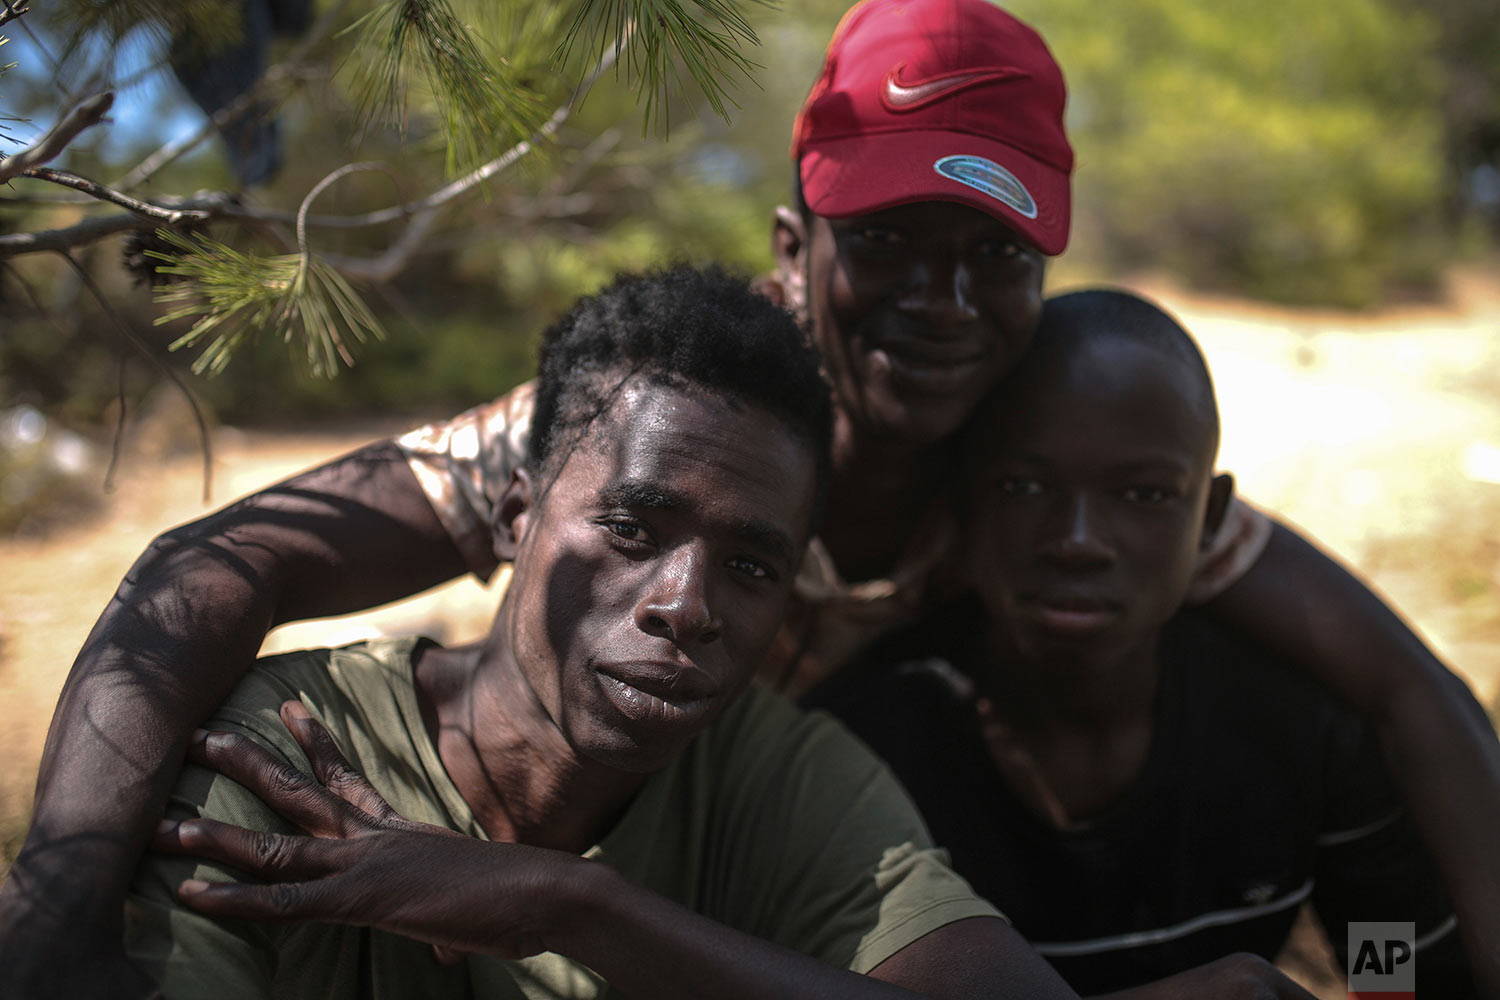 Sub-Saharan migrants pose for a portrait as they take shelter in a forest near Masnana, Sept. 5, 2018, on the outskirts of Tangier, Morocco. (AP Photo/Mosa'ab Elshamy)